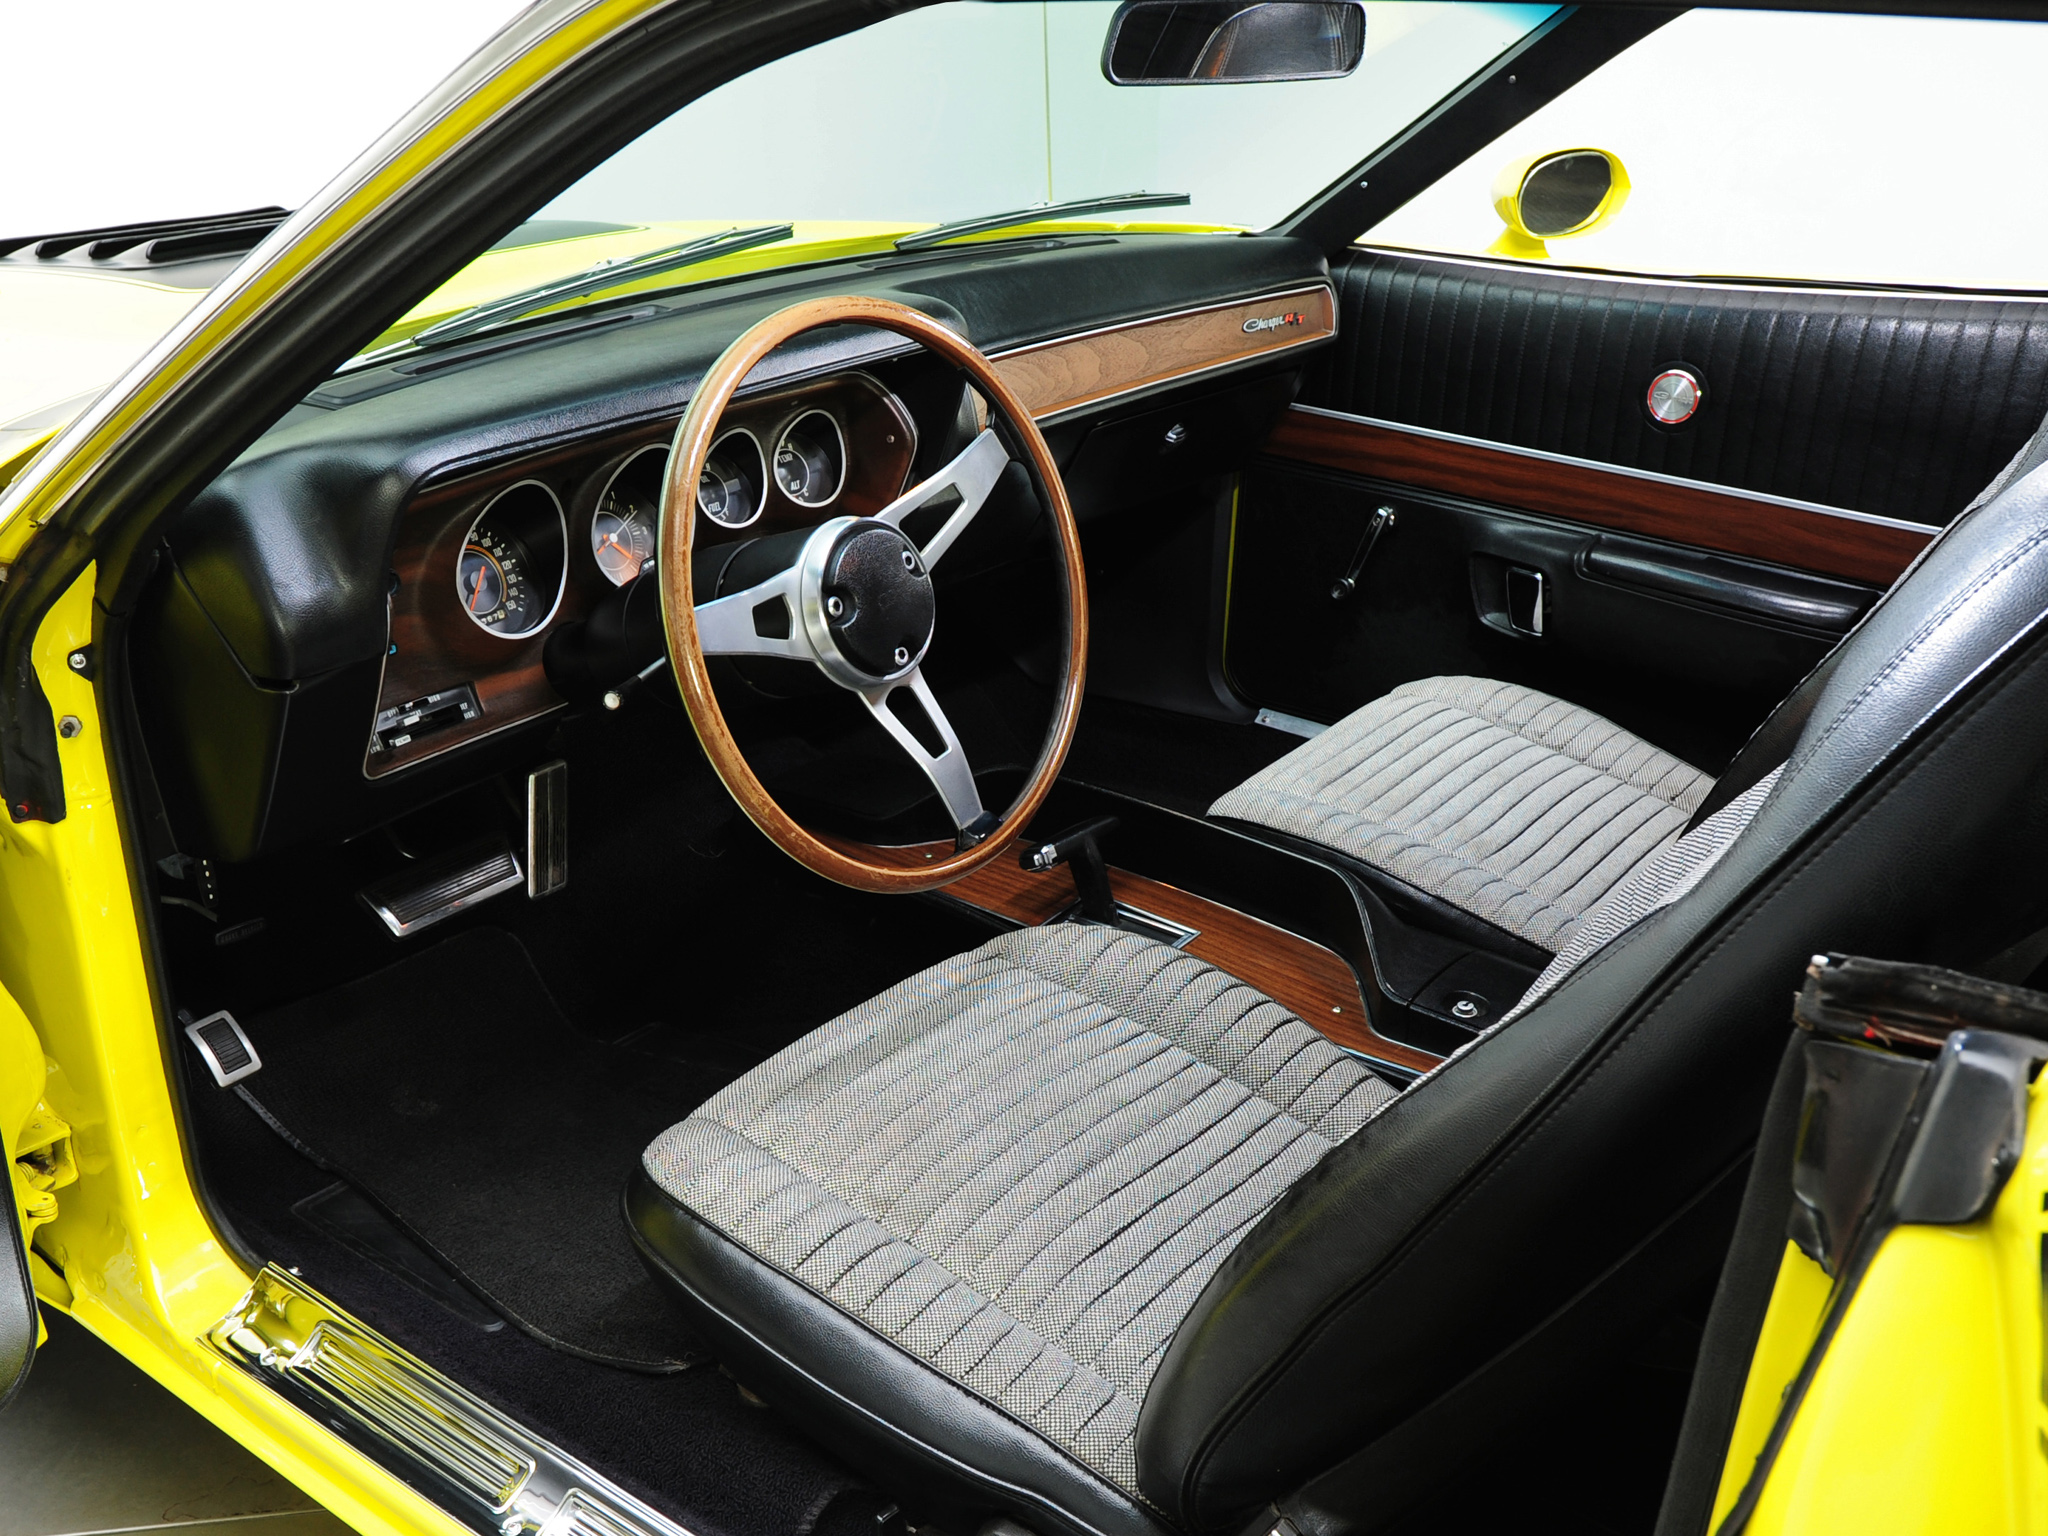 1971 Dodge Charger R-T 440 Magnum muscle classic interior ...